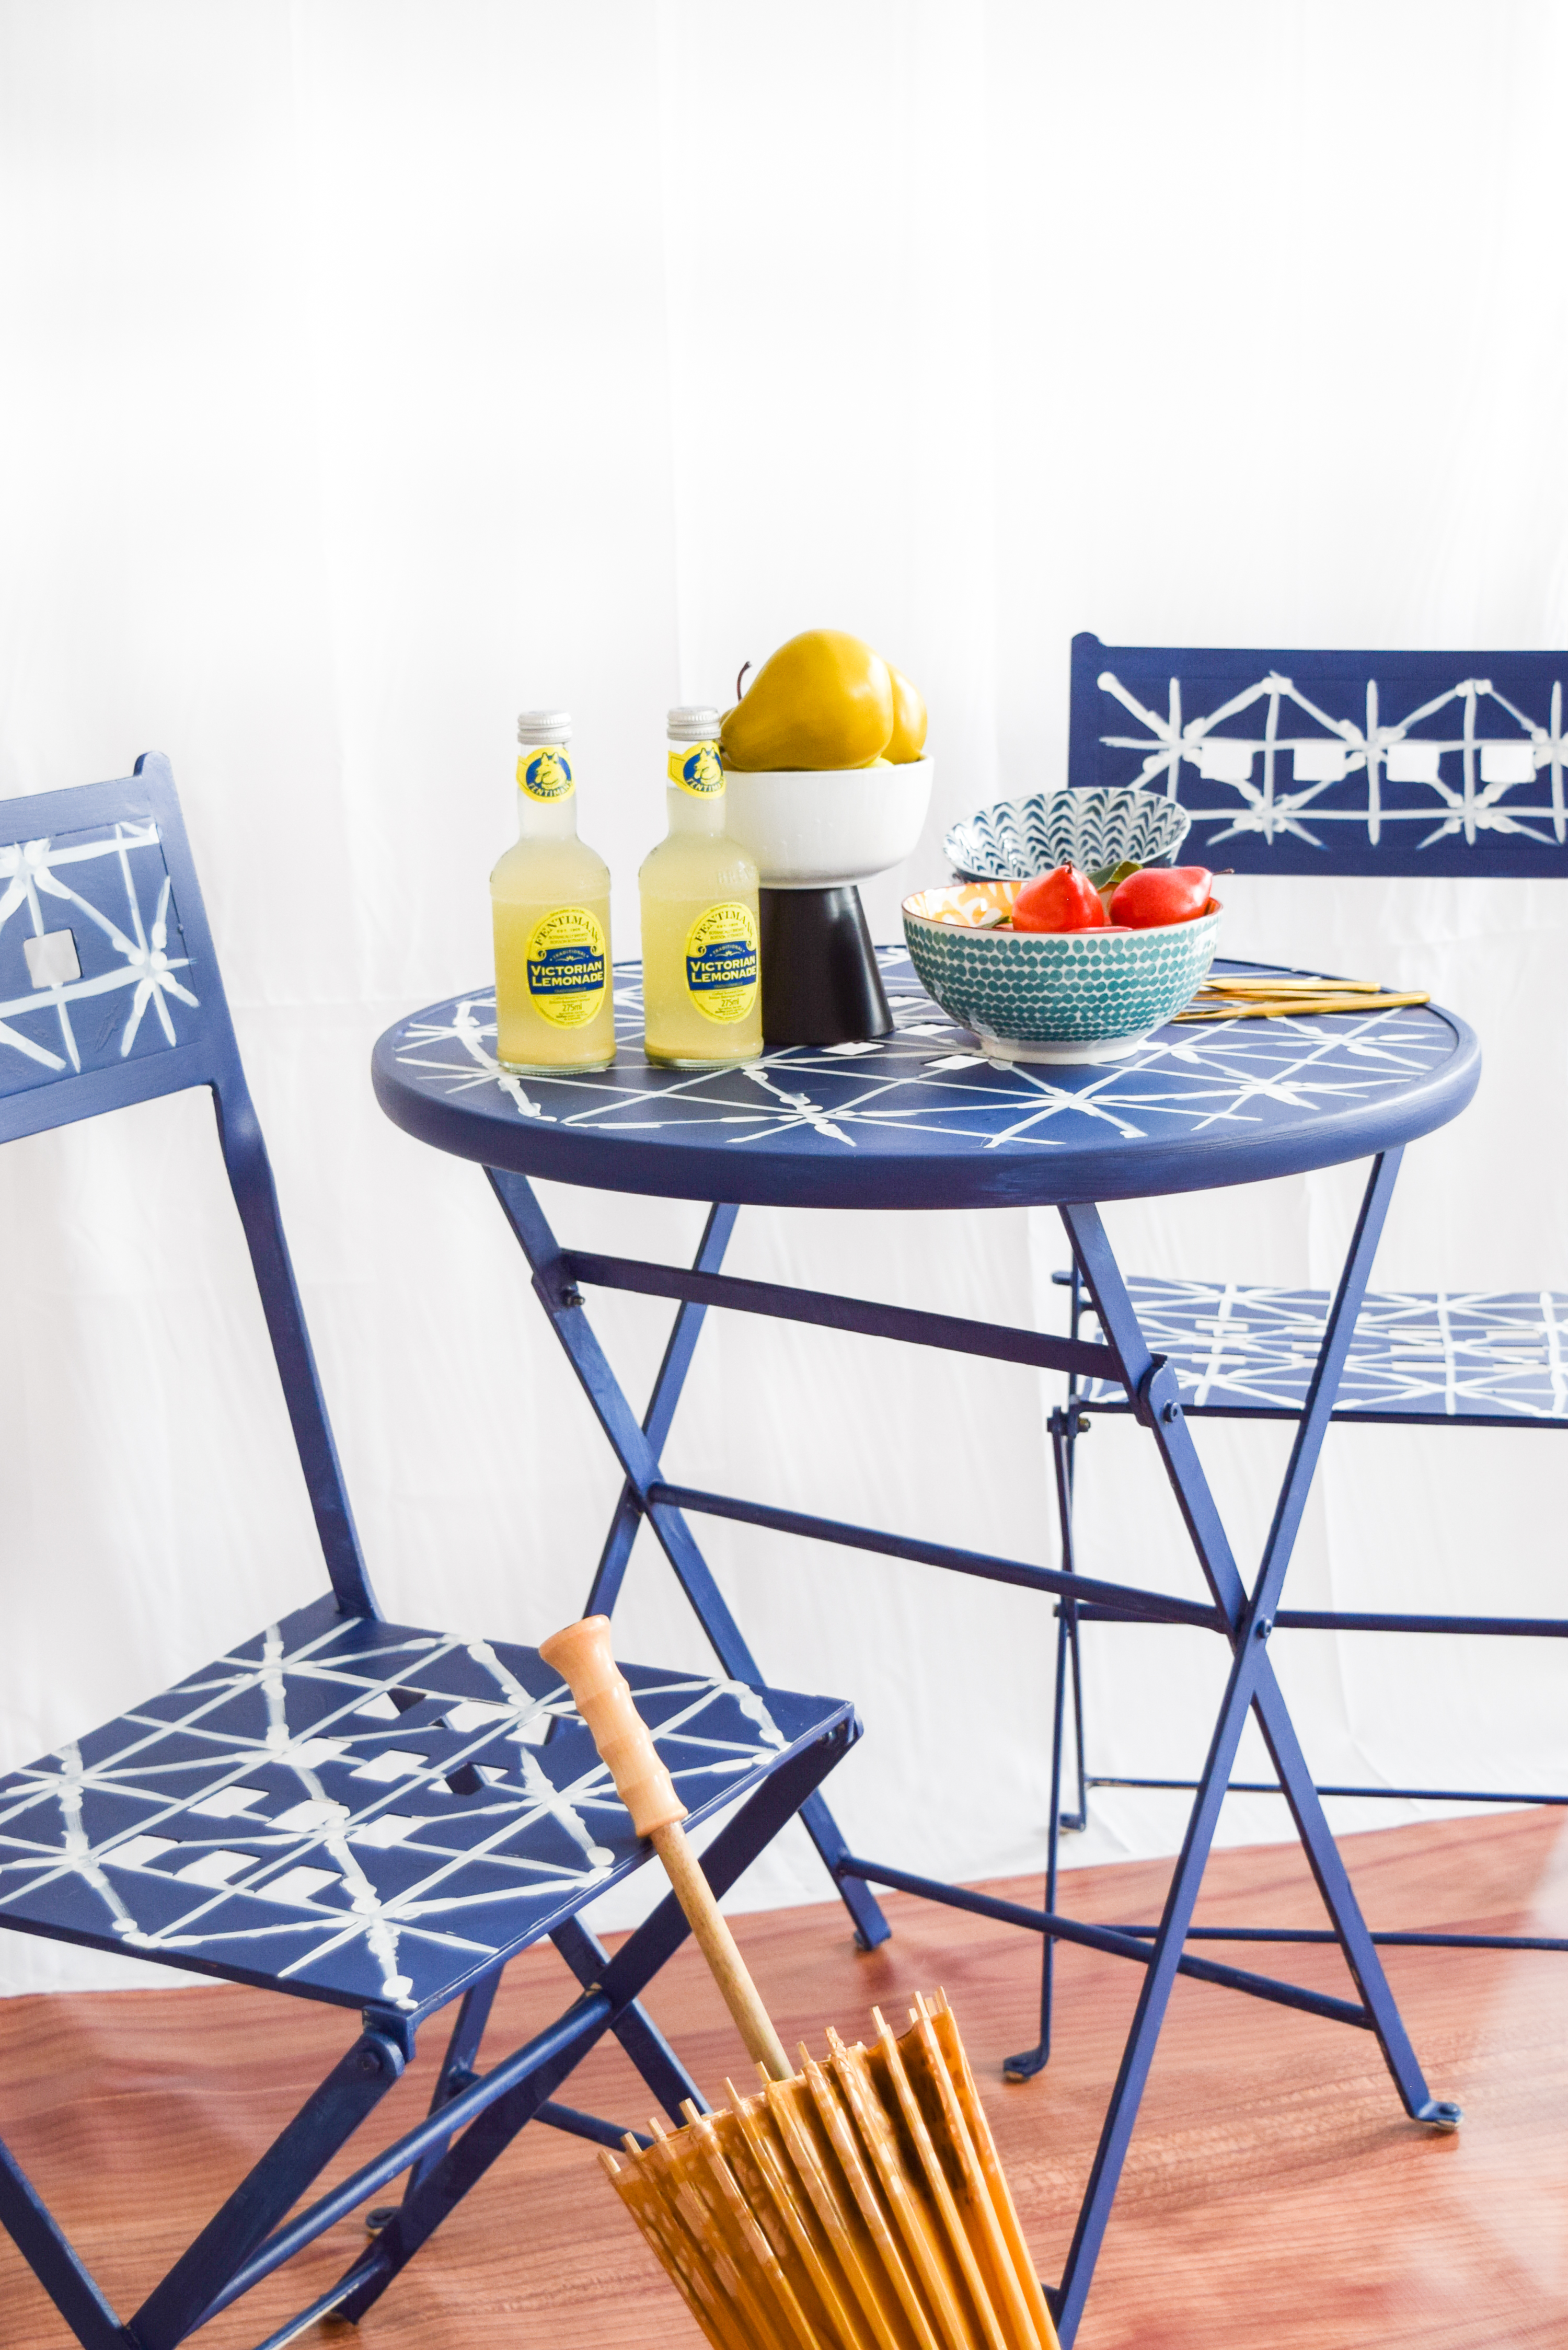 DIY Ikea Patio Table • Fusion™ Mineral Paint